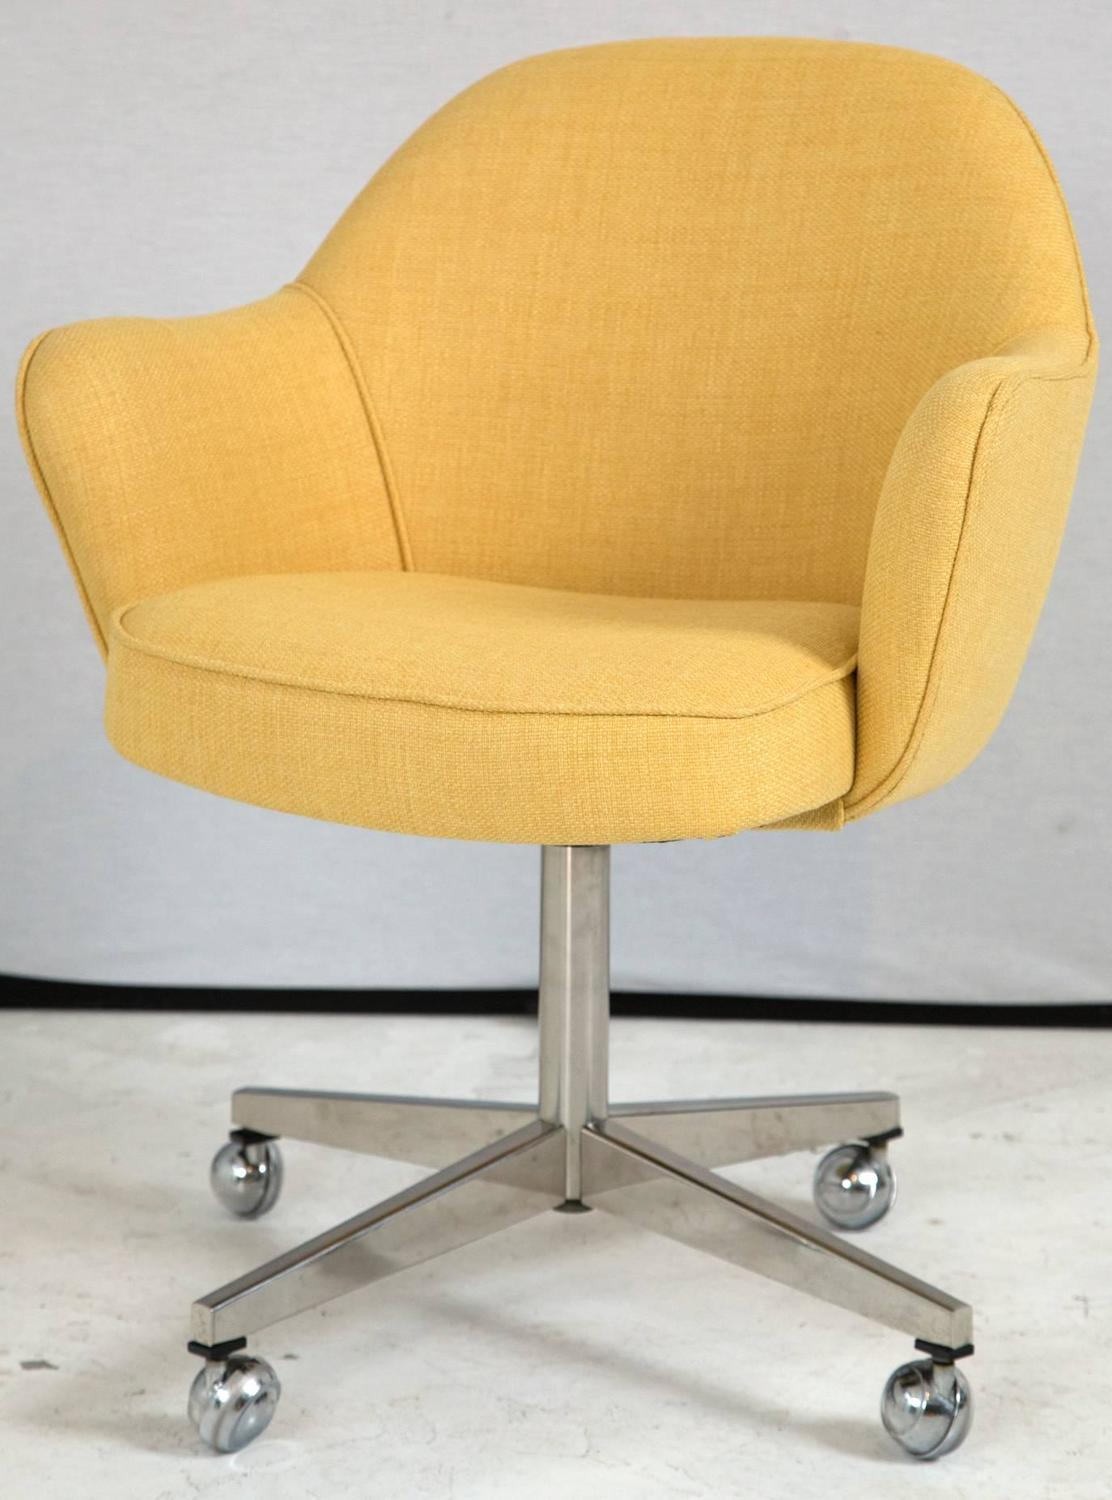 yellow office chair power lift chairs medicare knoll desk in microfiber for sale at 1stdibs